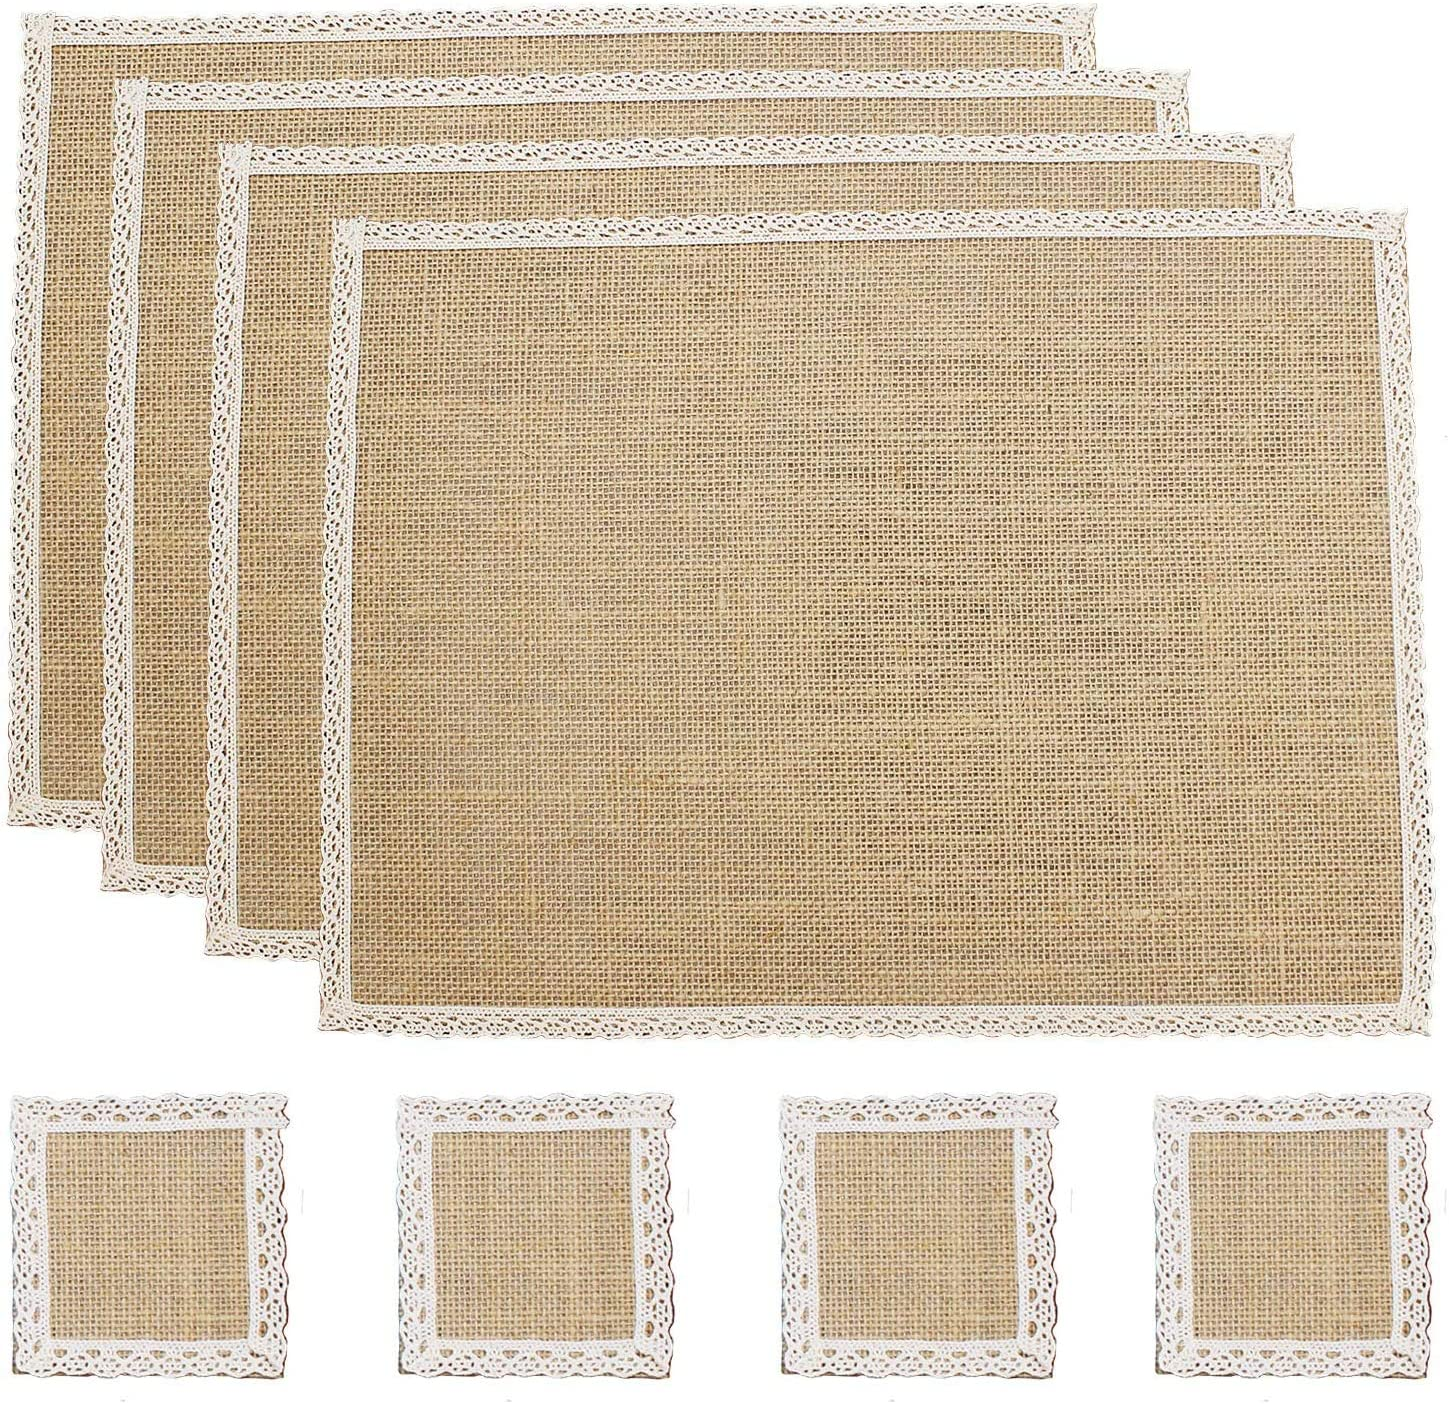 Amazon Com Fiveren Coffee Bar Mat Burlap With Lace Water Proof Placemats Farmhouse Rustic Table Mat For Parties Weddings Bbq S Holidays Everyday Use 4 Piece Placemats 4 Pieces Cup Mats Kitchen Dining